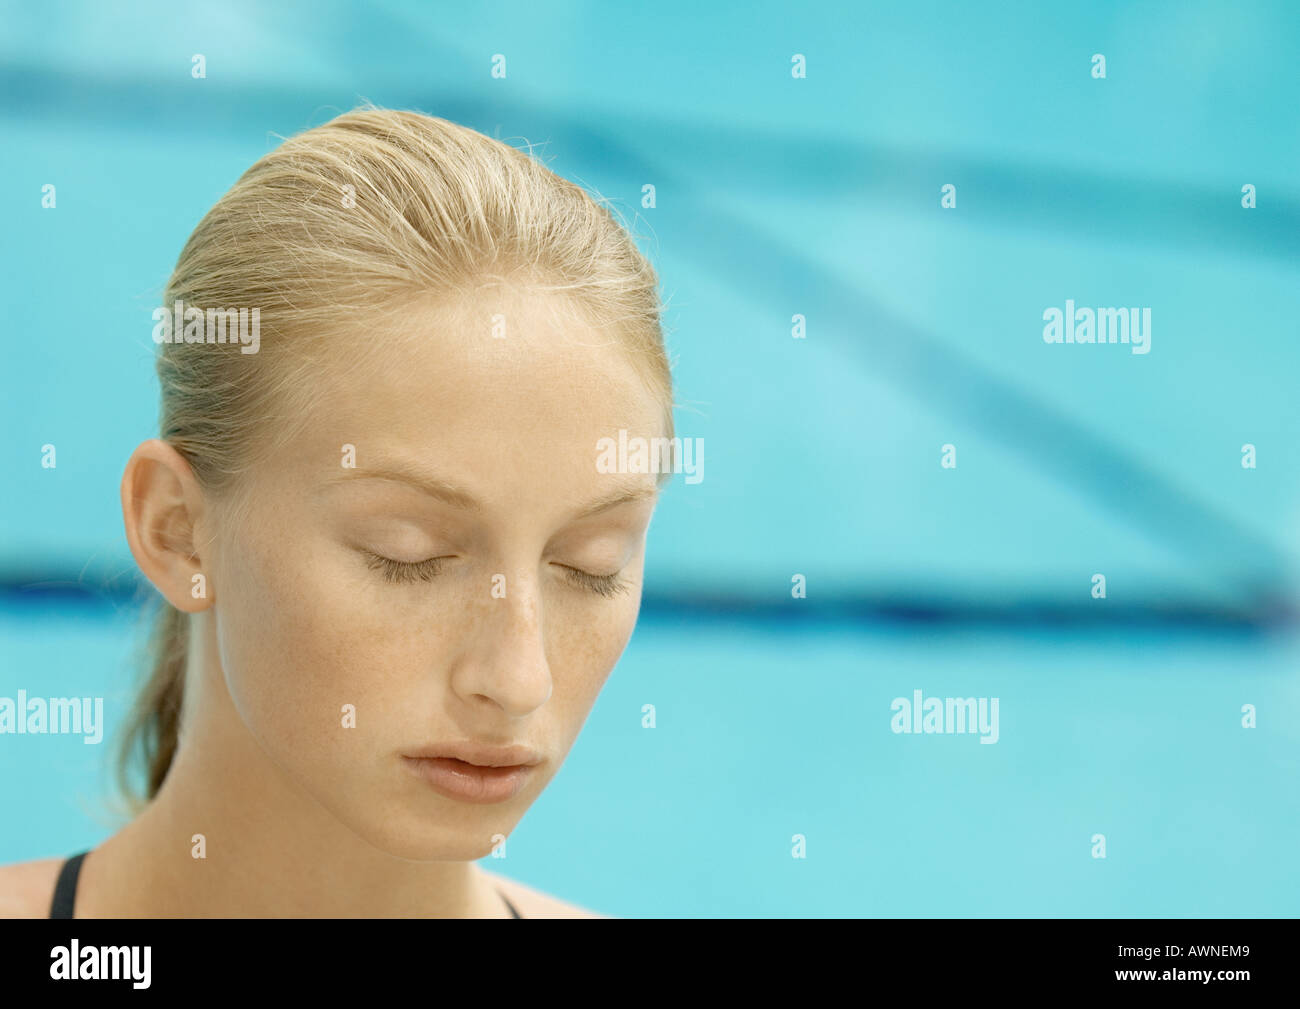 Woman, eyes closed, pool in background - Stock Image